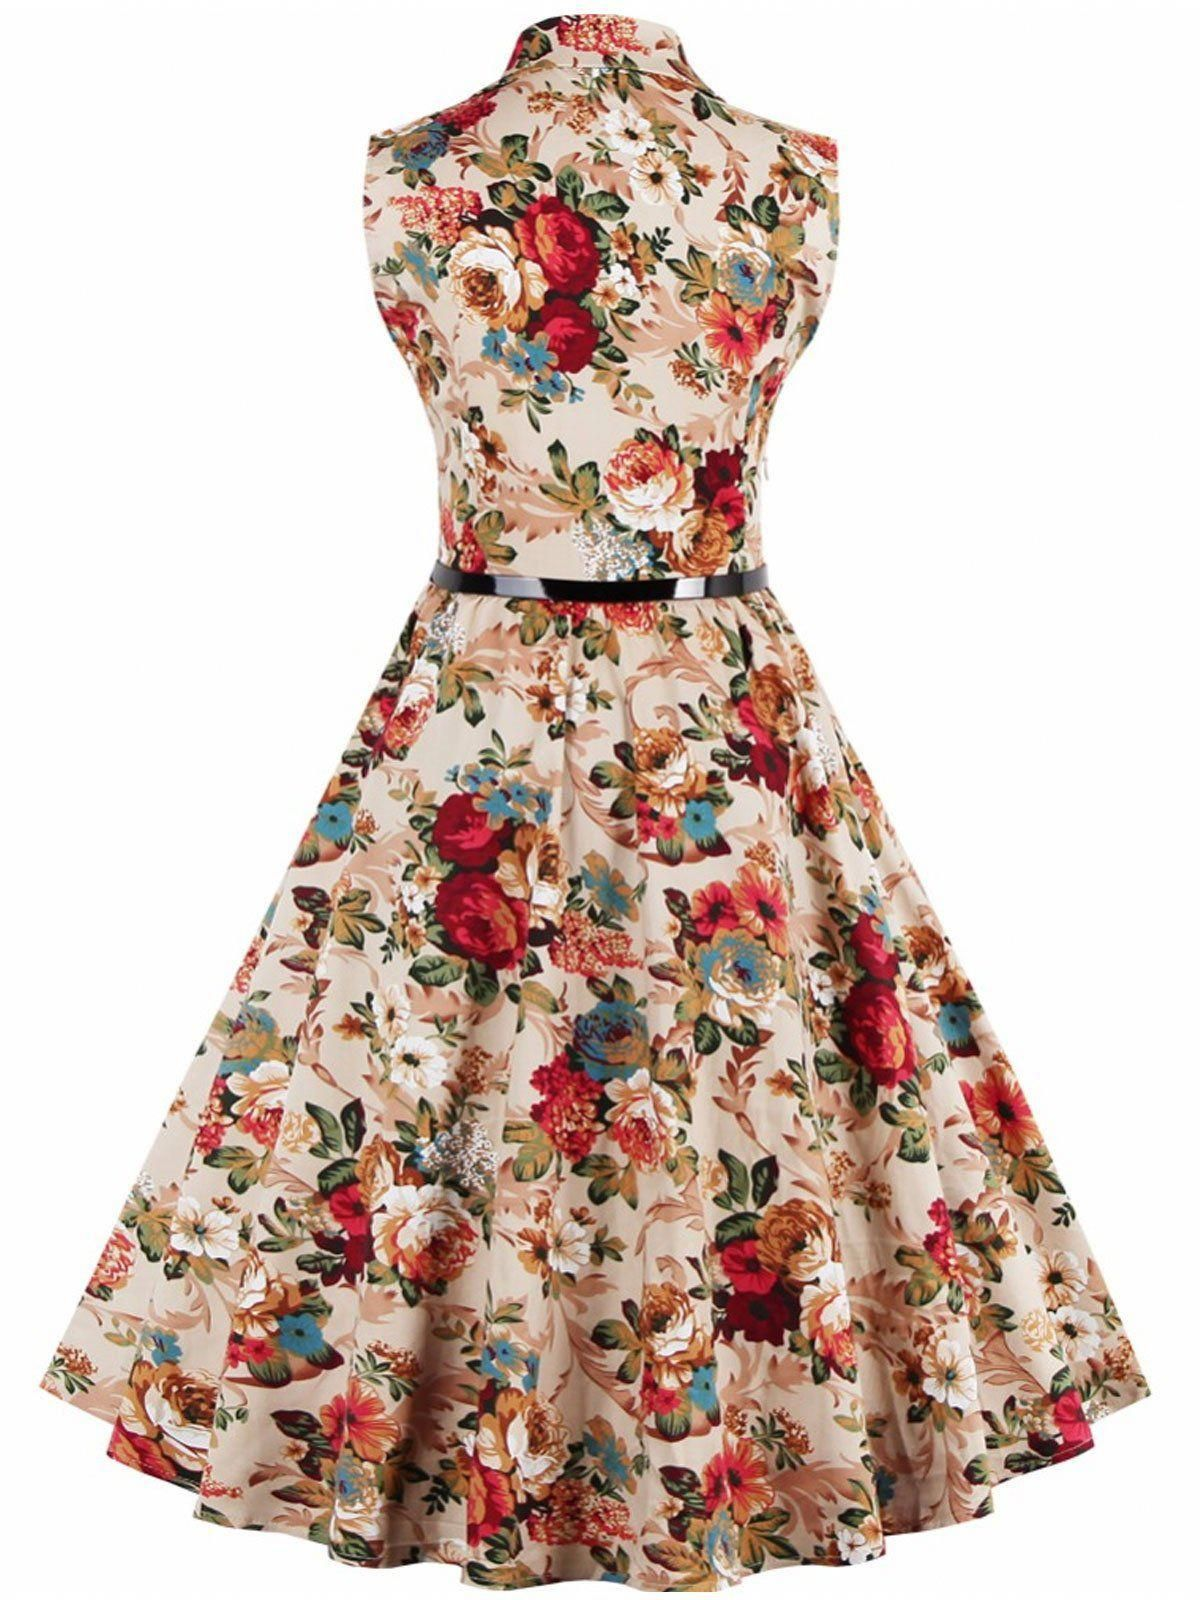 f4838189f Apricot 1950s Button Down Floral Dress – Retro Stage - Chic Vintage Dresses  and Accessories